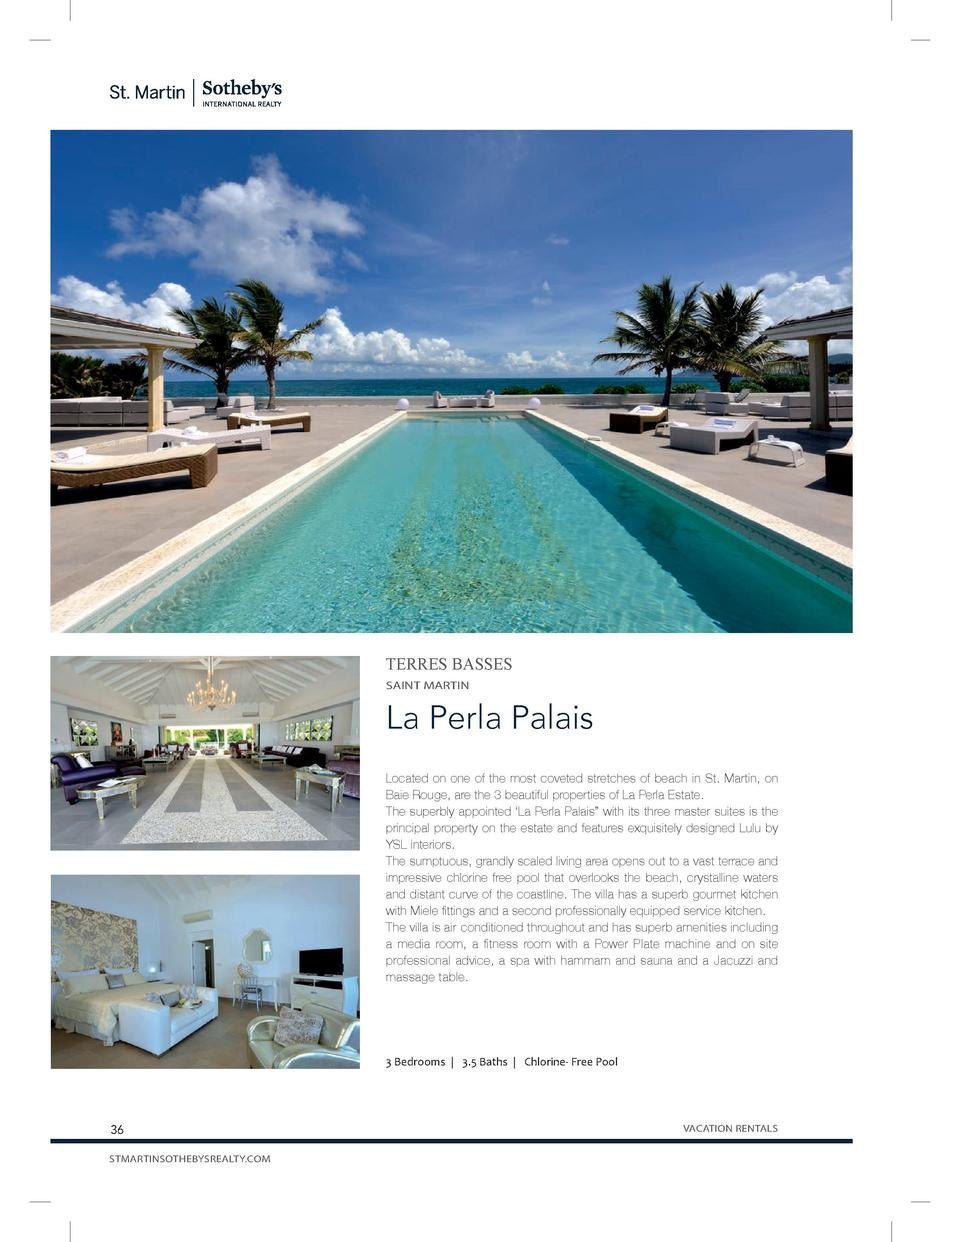 TERRES BASSES SAINT MARTIN  La Perla Palais Located on one of the most coveted stretches of beach in St. Martin, on Baie R...